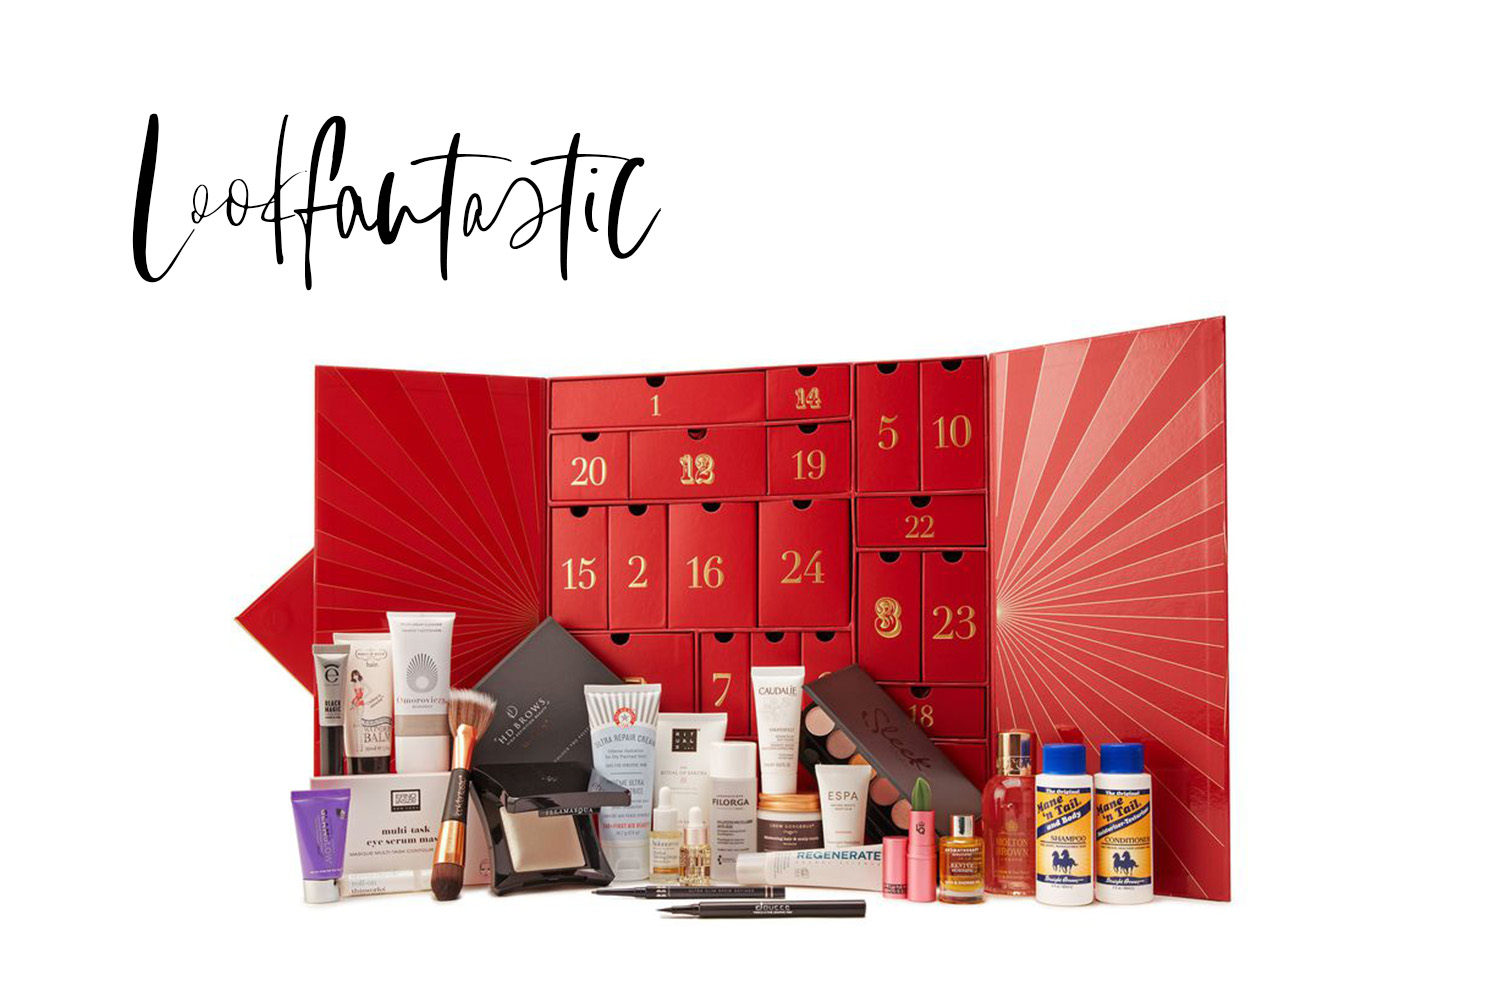 Beauty Adventskalender 2018